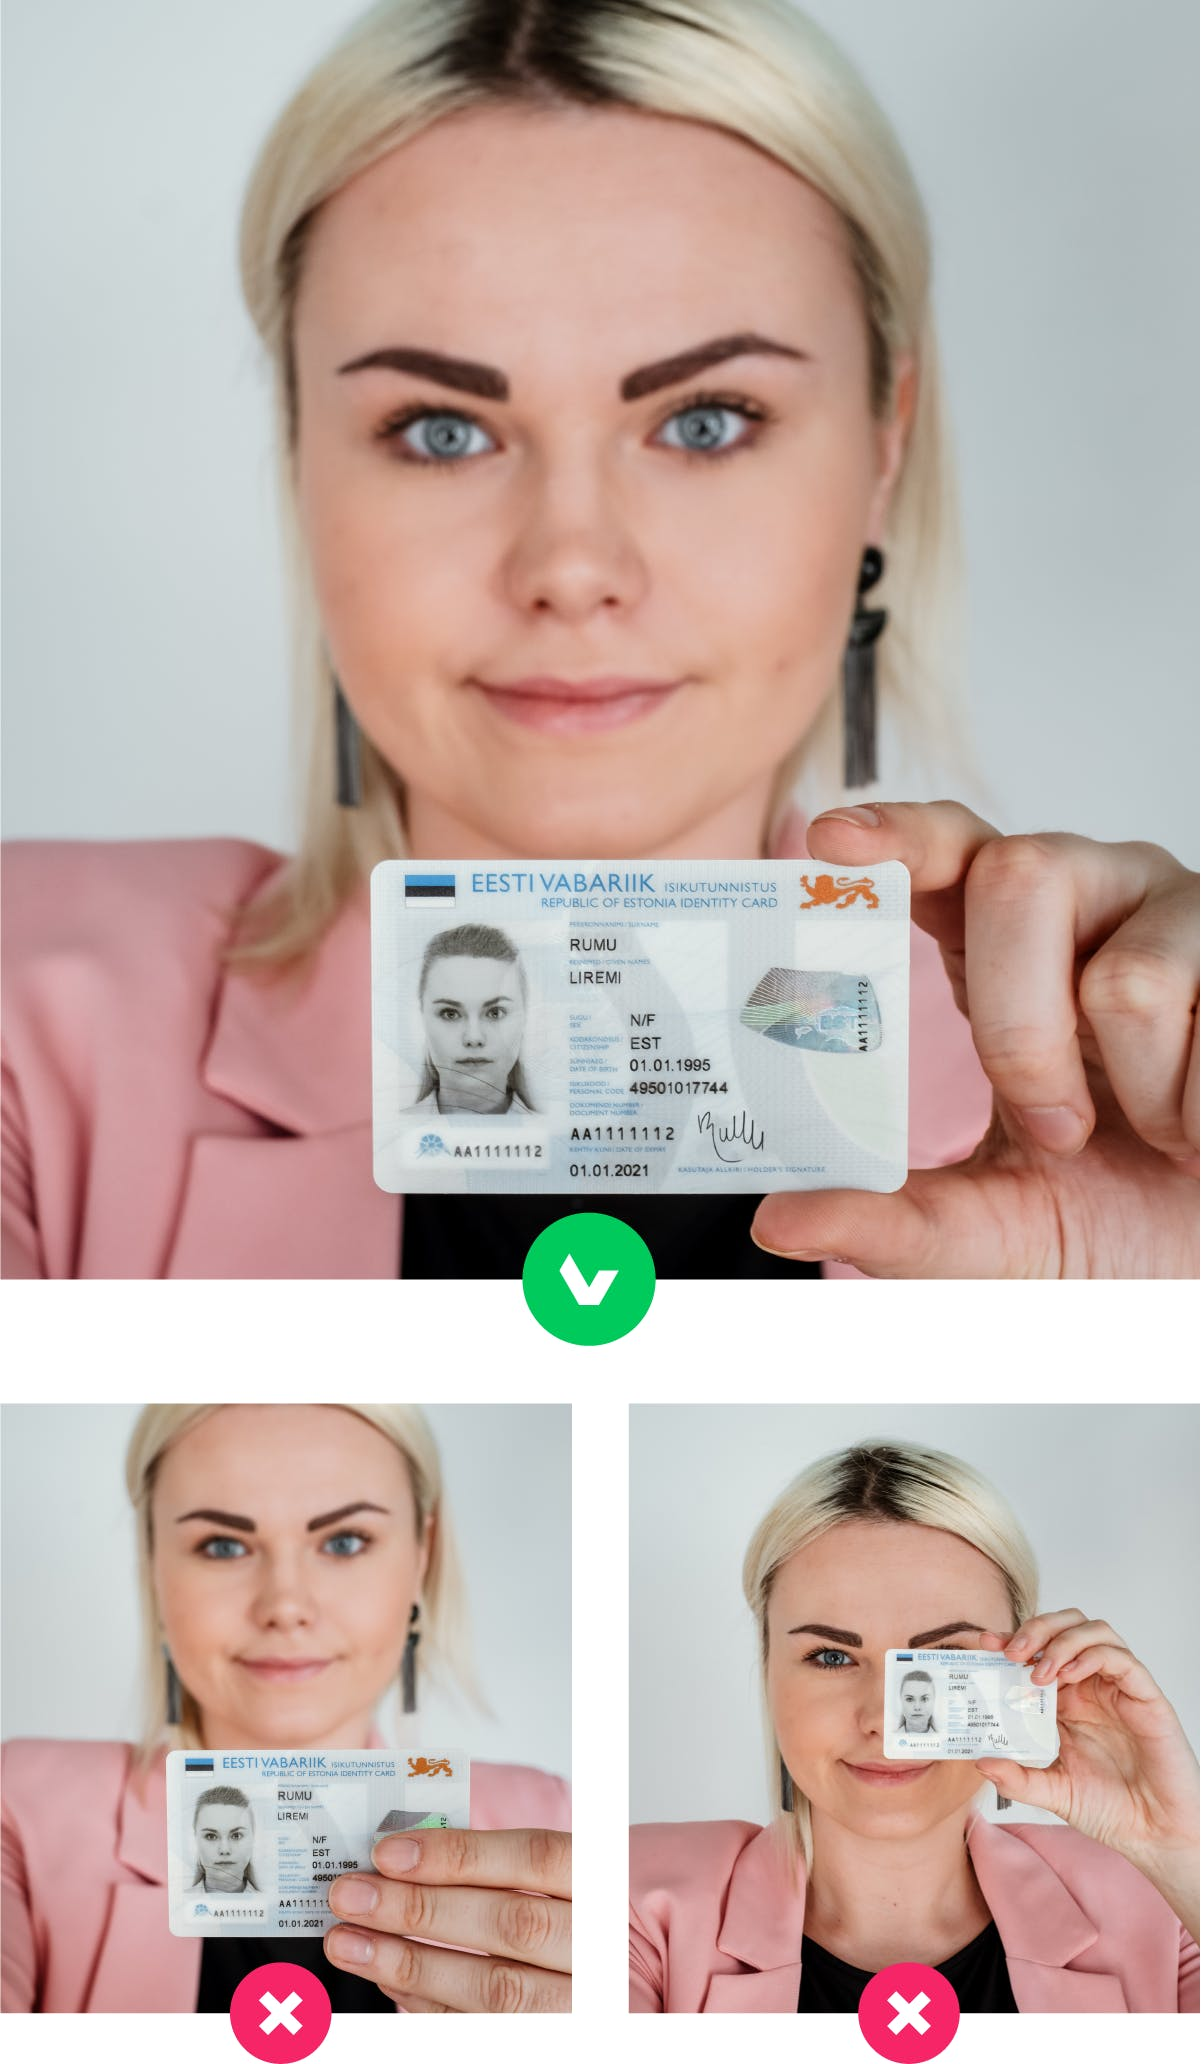 You may be asked to take a photo of yourself with your ID